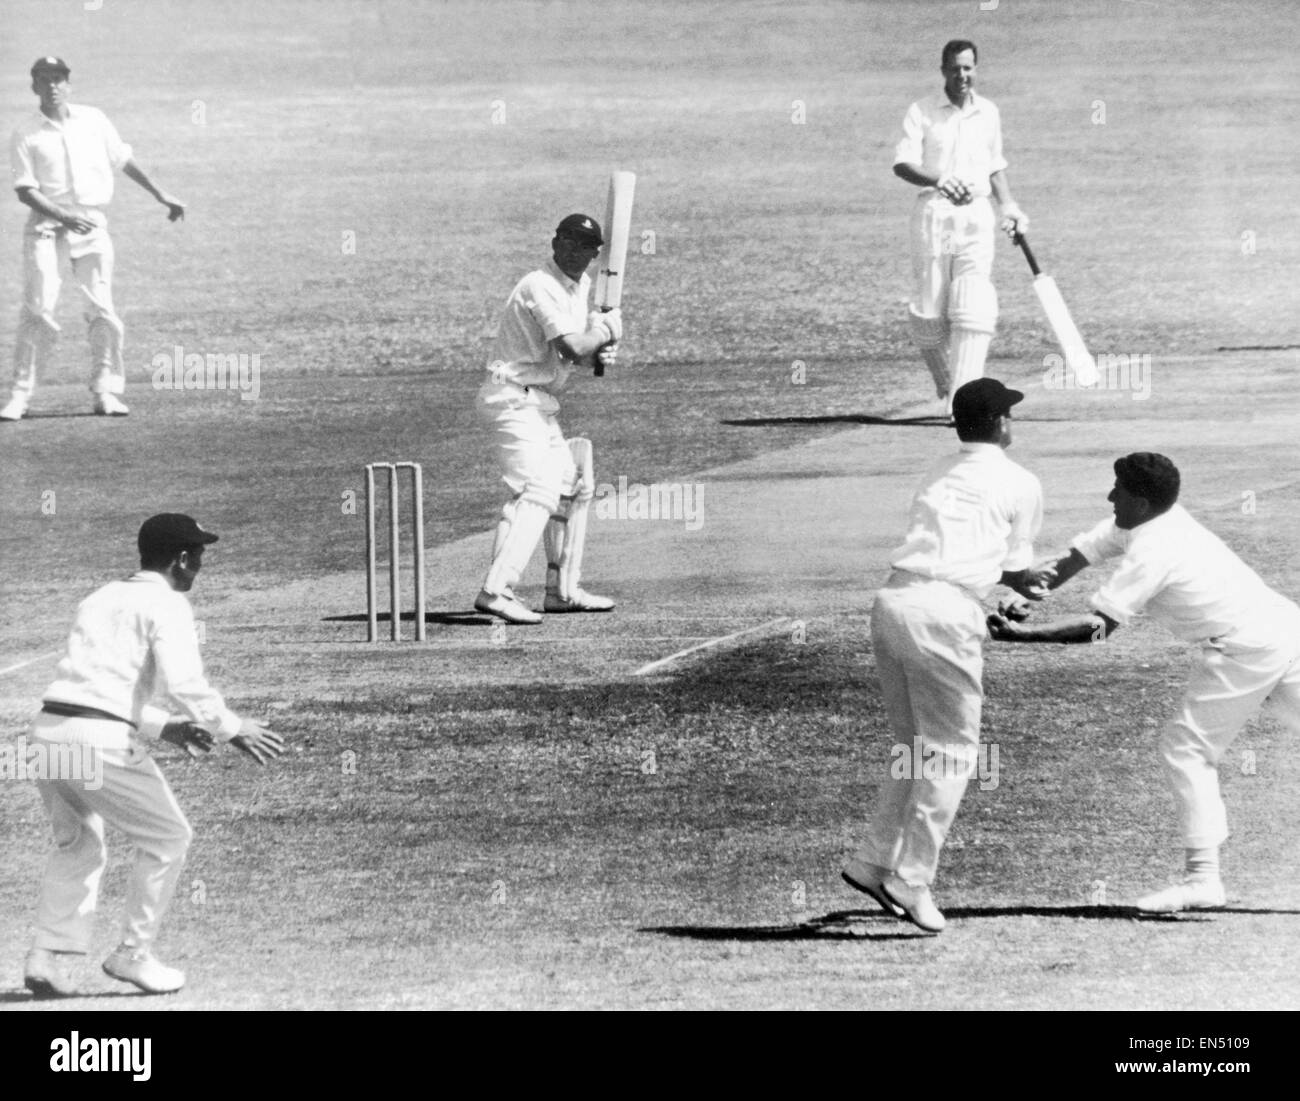 M.C.C tour of South Africa 1964. Barlow opening batsman for S.A is caught by Barrington and Dexter. - Stock Image